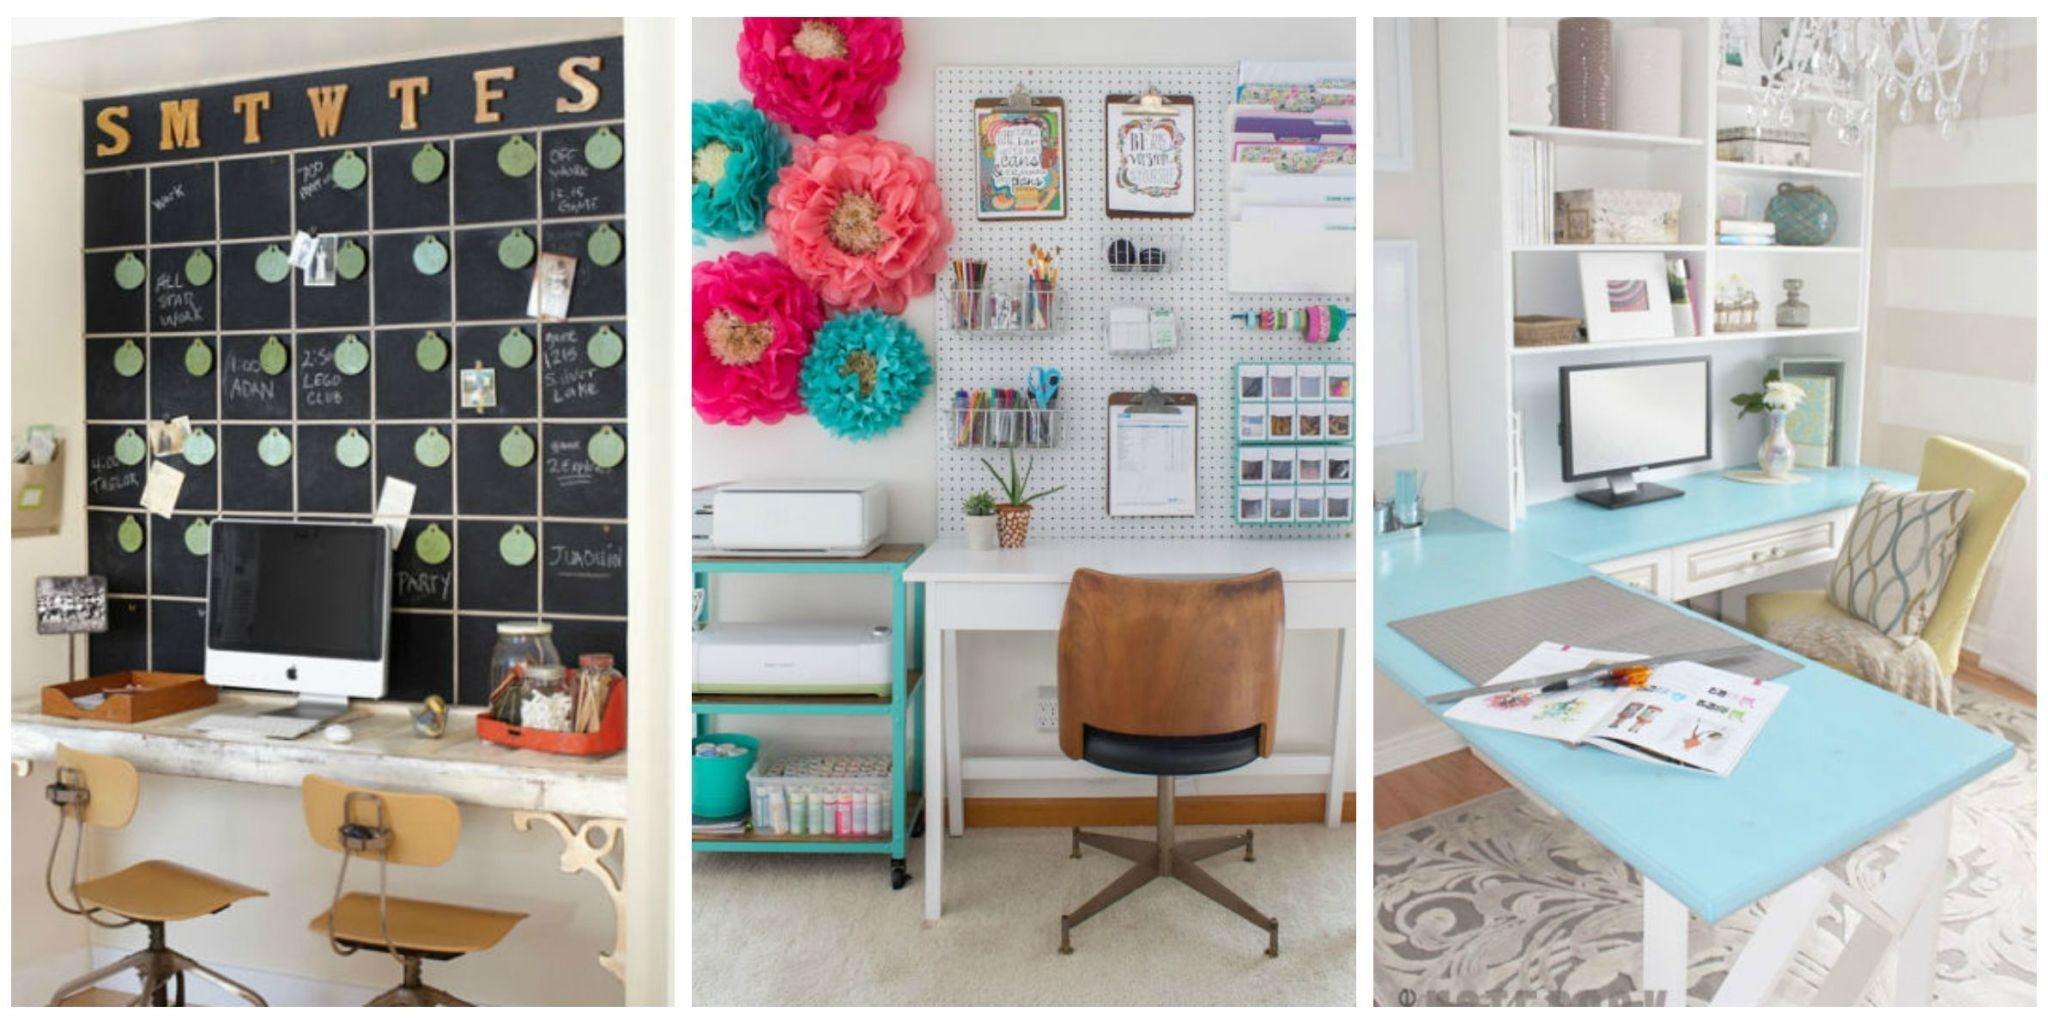 These Smart Workspaces And Beautiful Ideas Are As Creative As You  Areu2014whether You Have Space For Just A Desk, An Extra Room All To Yourself,  Or A Standalone ...